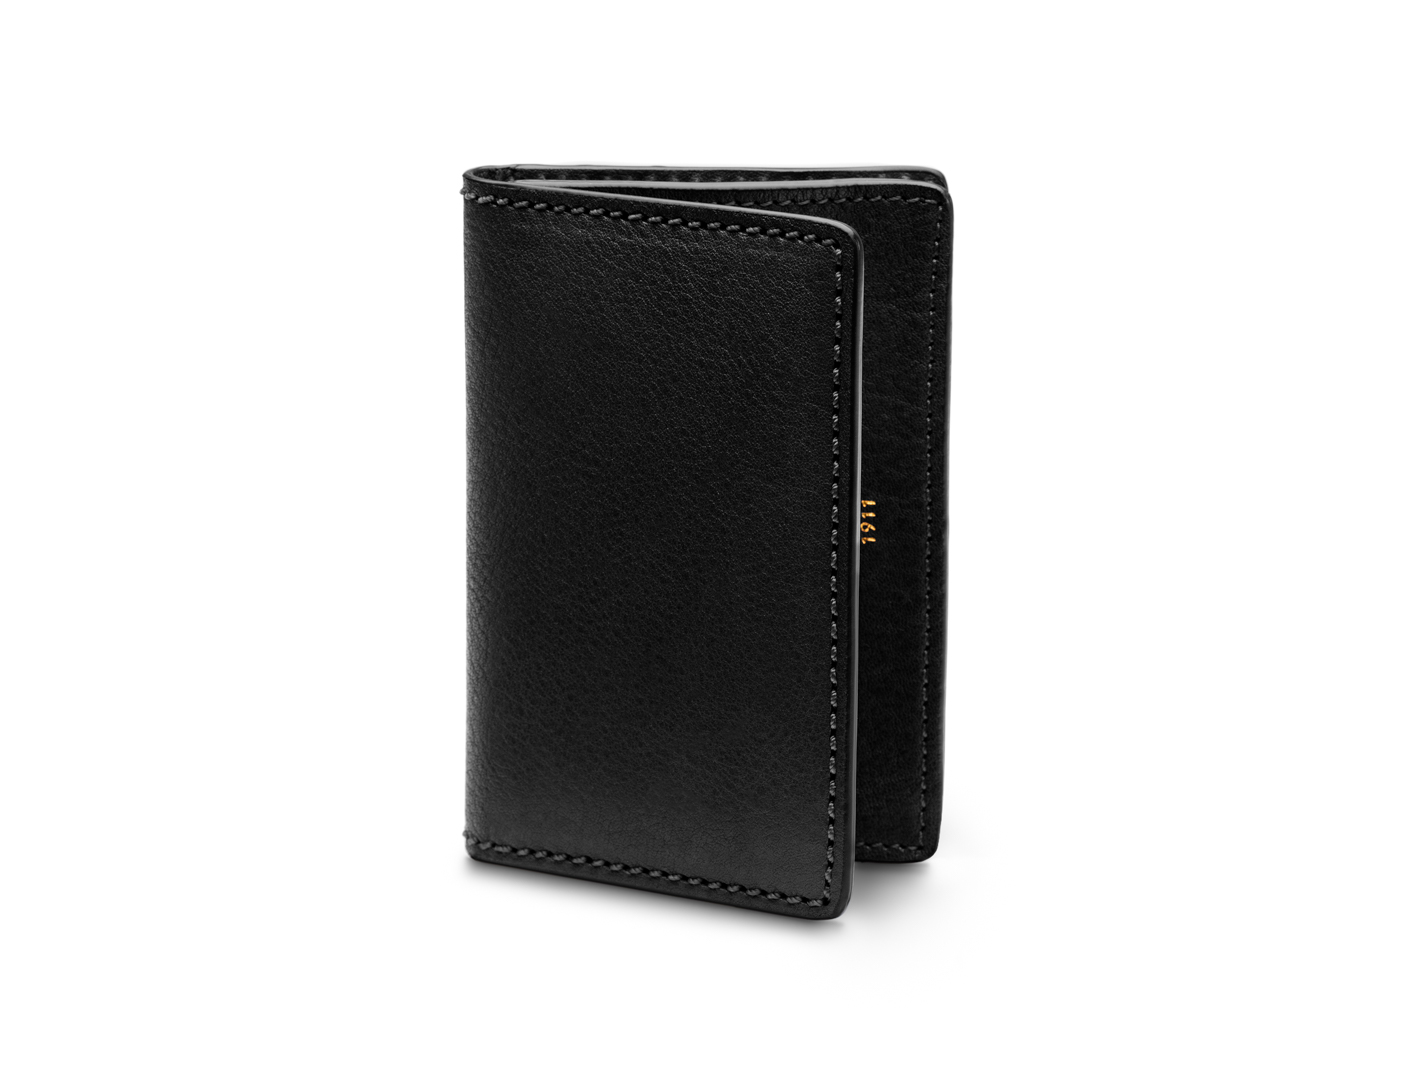 Full Gusset, 2 Pkt Card Case w/I.D.-159 Black - 159 Black